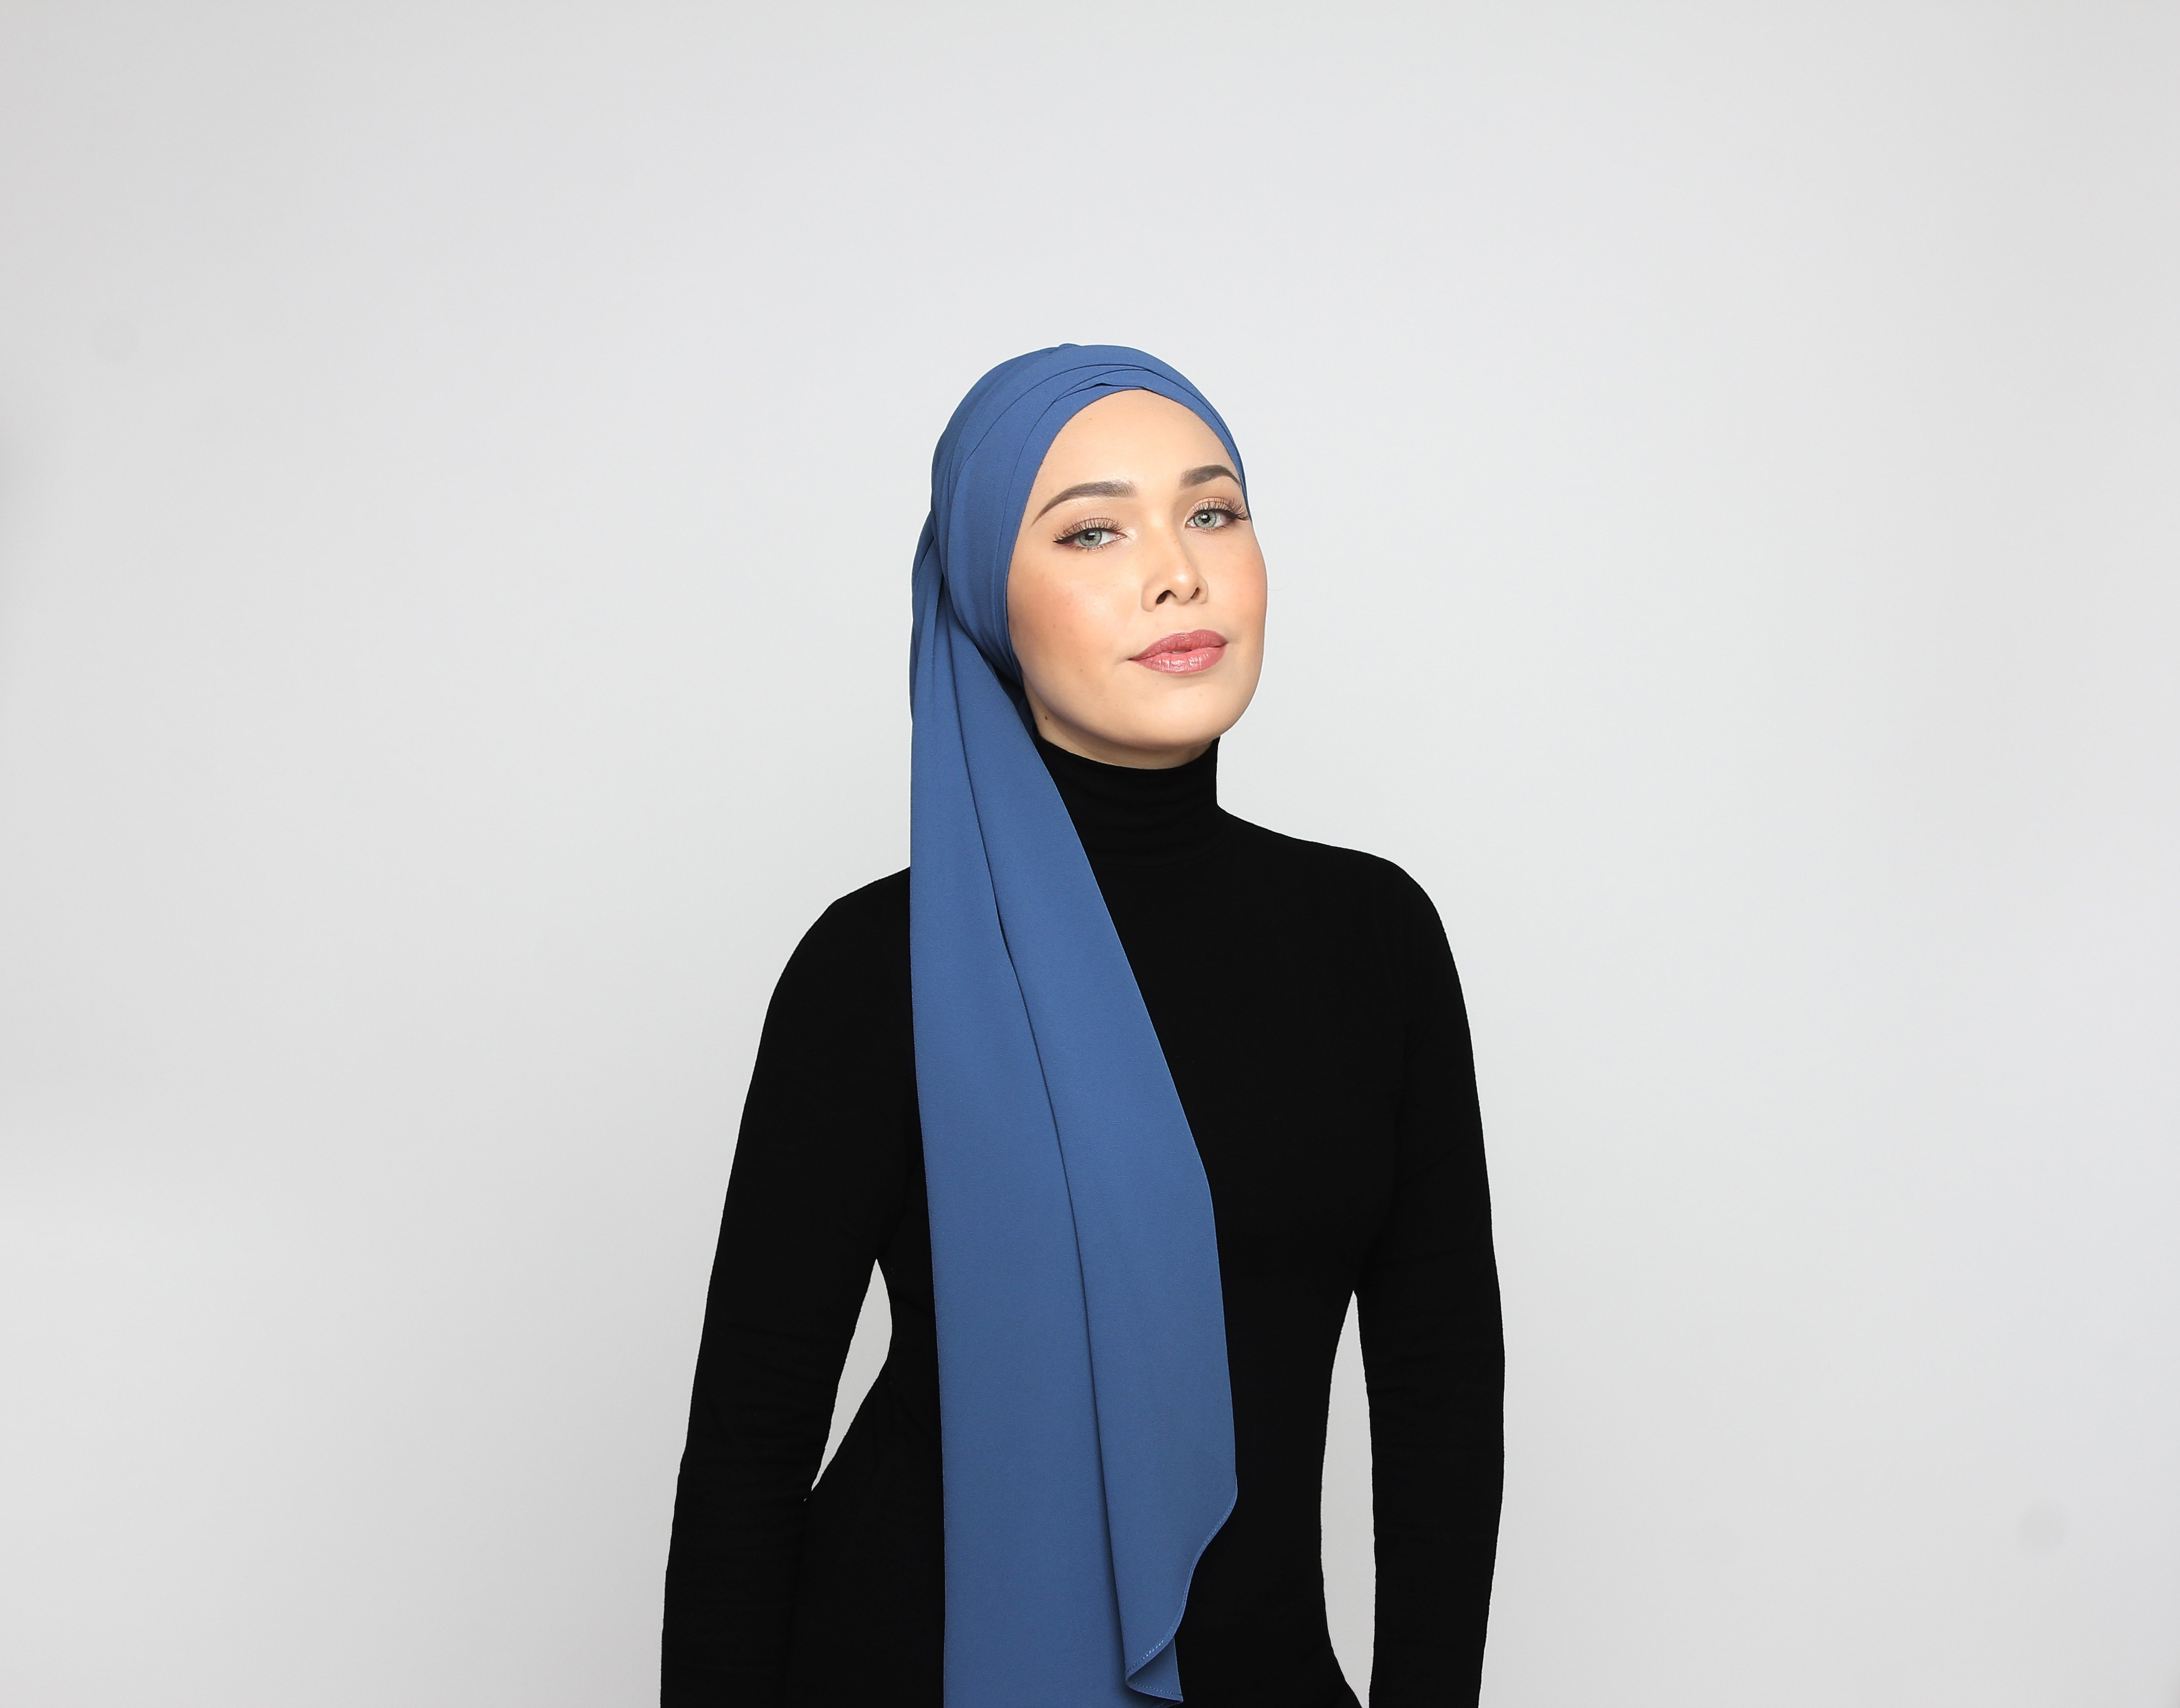 b4d10ffe32c19 Cover girls: five hijab-wearing Instagram fashionistas from Asia ...